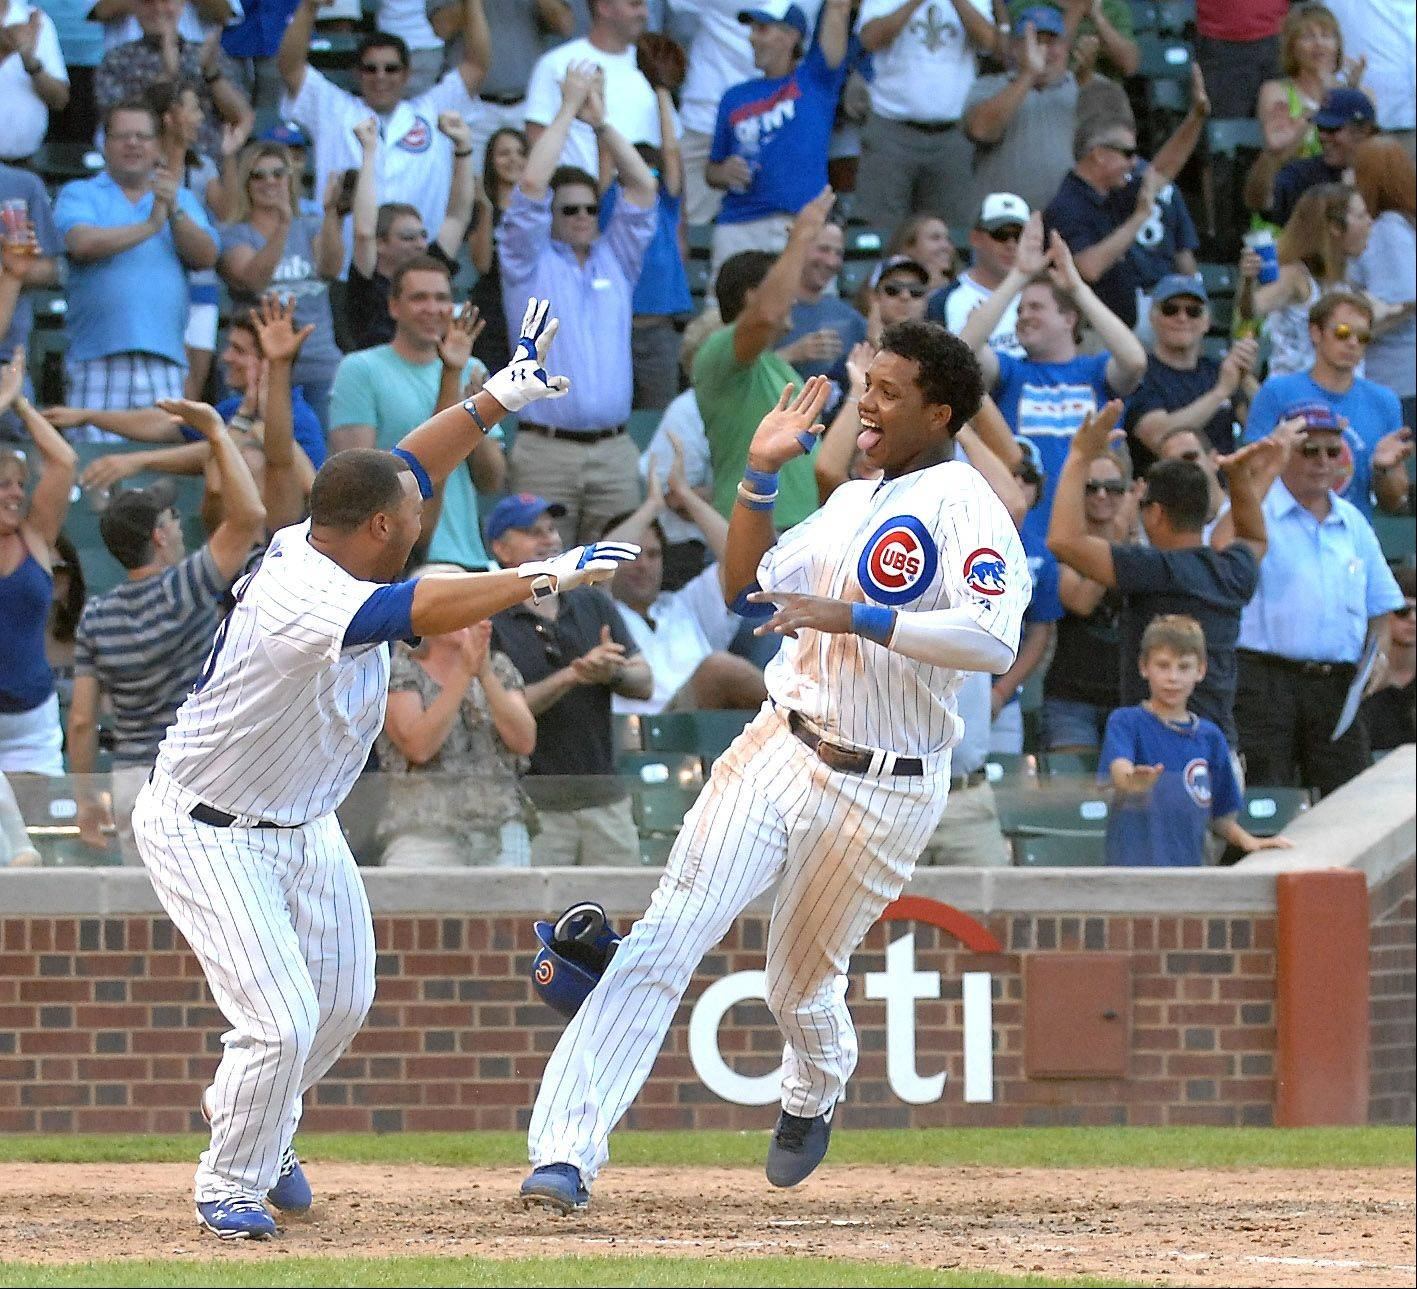 Chicago Cubs shortstop Starlin Castro crosses the plate as the winning run in the bottom of the ninth on a hit by Alfonso Soriano to beat Milwaukee 12-11 during Thursday�s game at Wrigley Field in Chicago. At left is Welington Castillo.